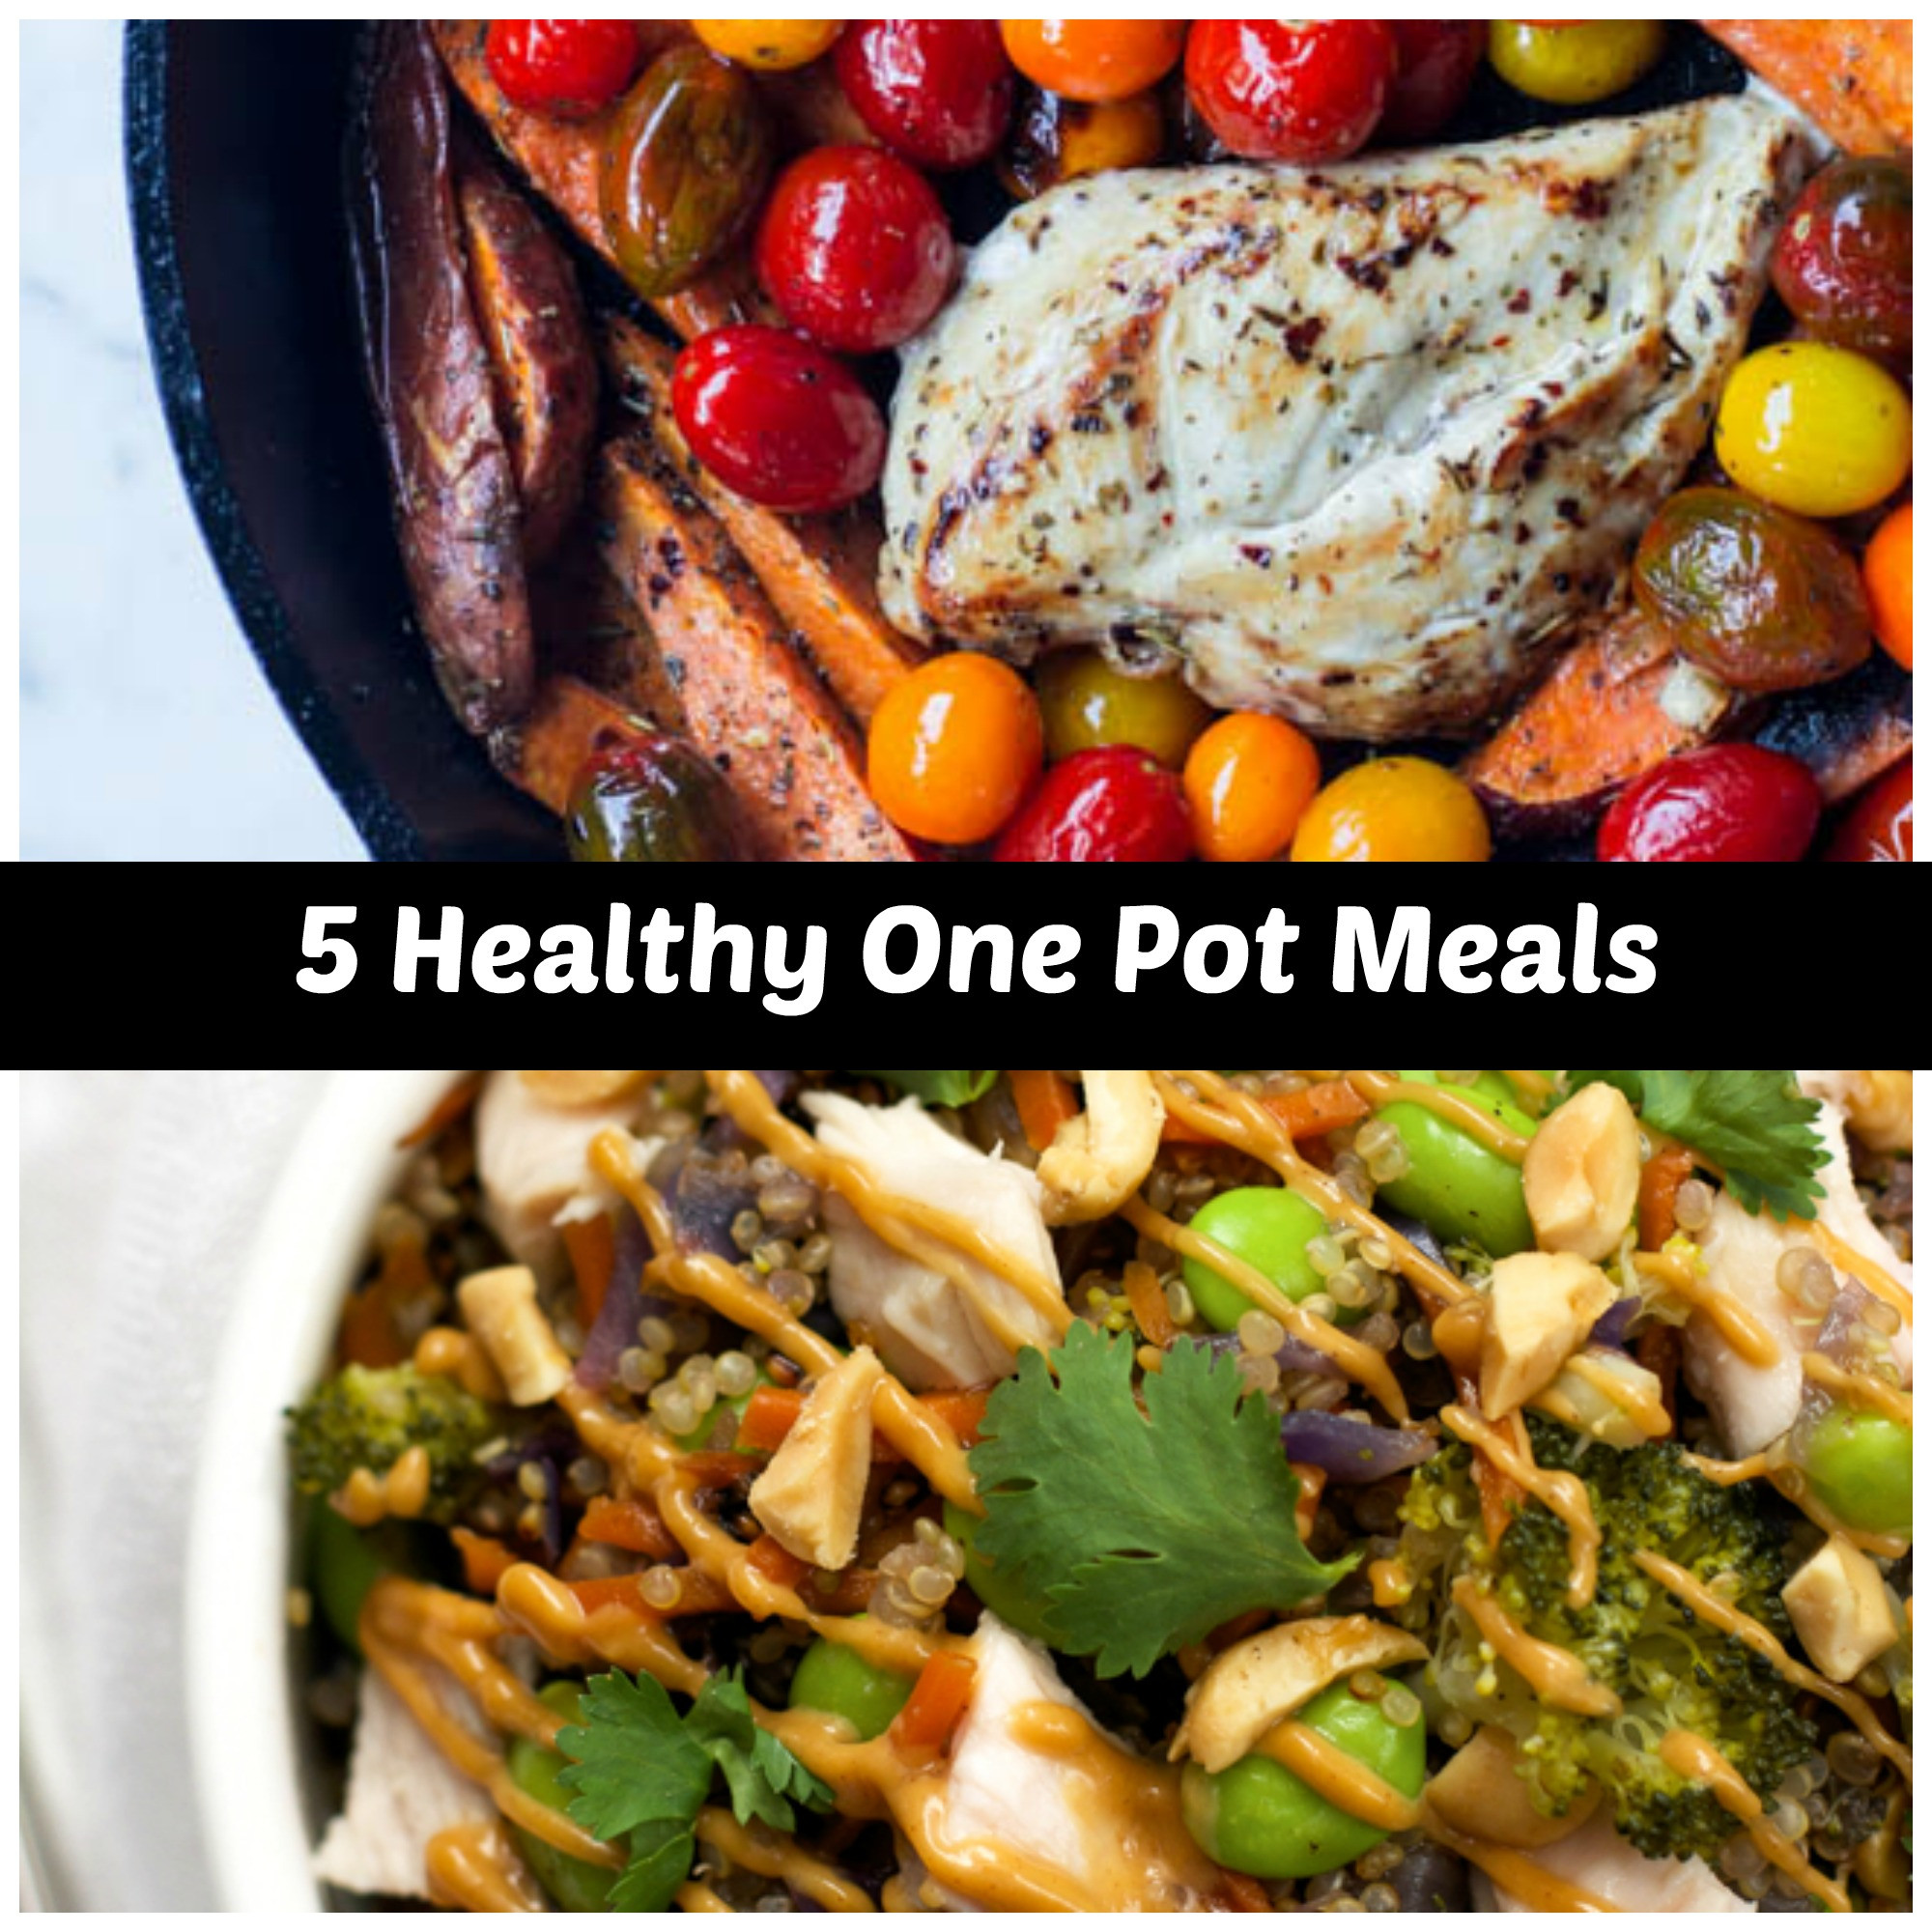 Healthy One Pot Dinners  5 Healthy e Pot Meals You Need to Try